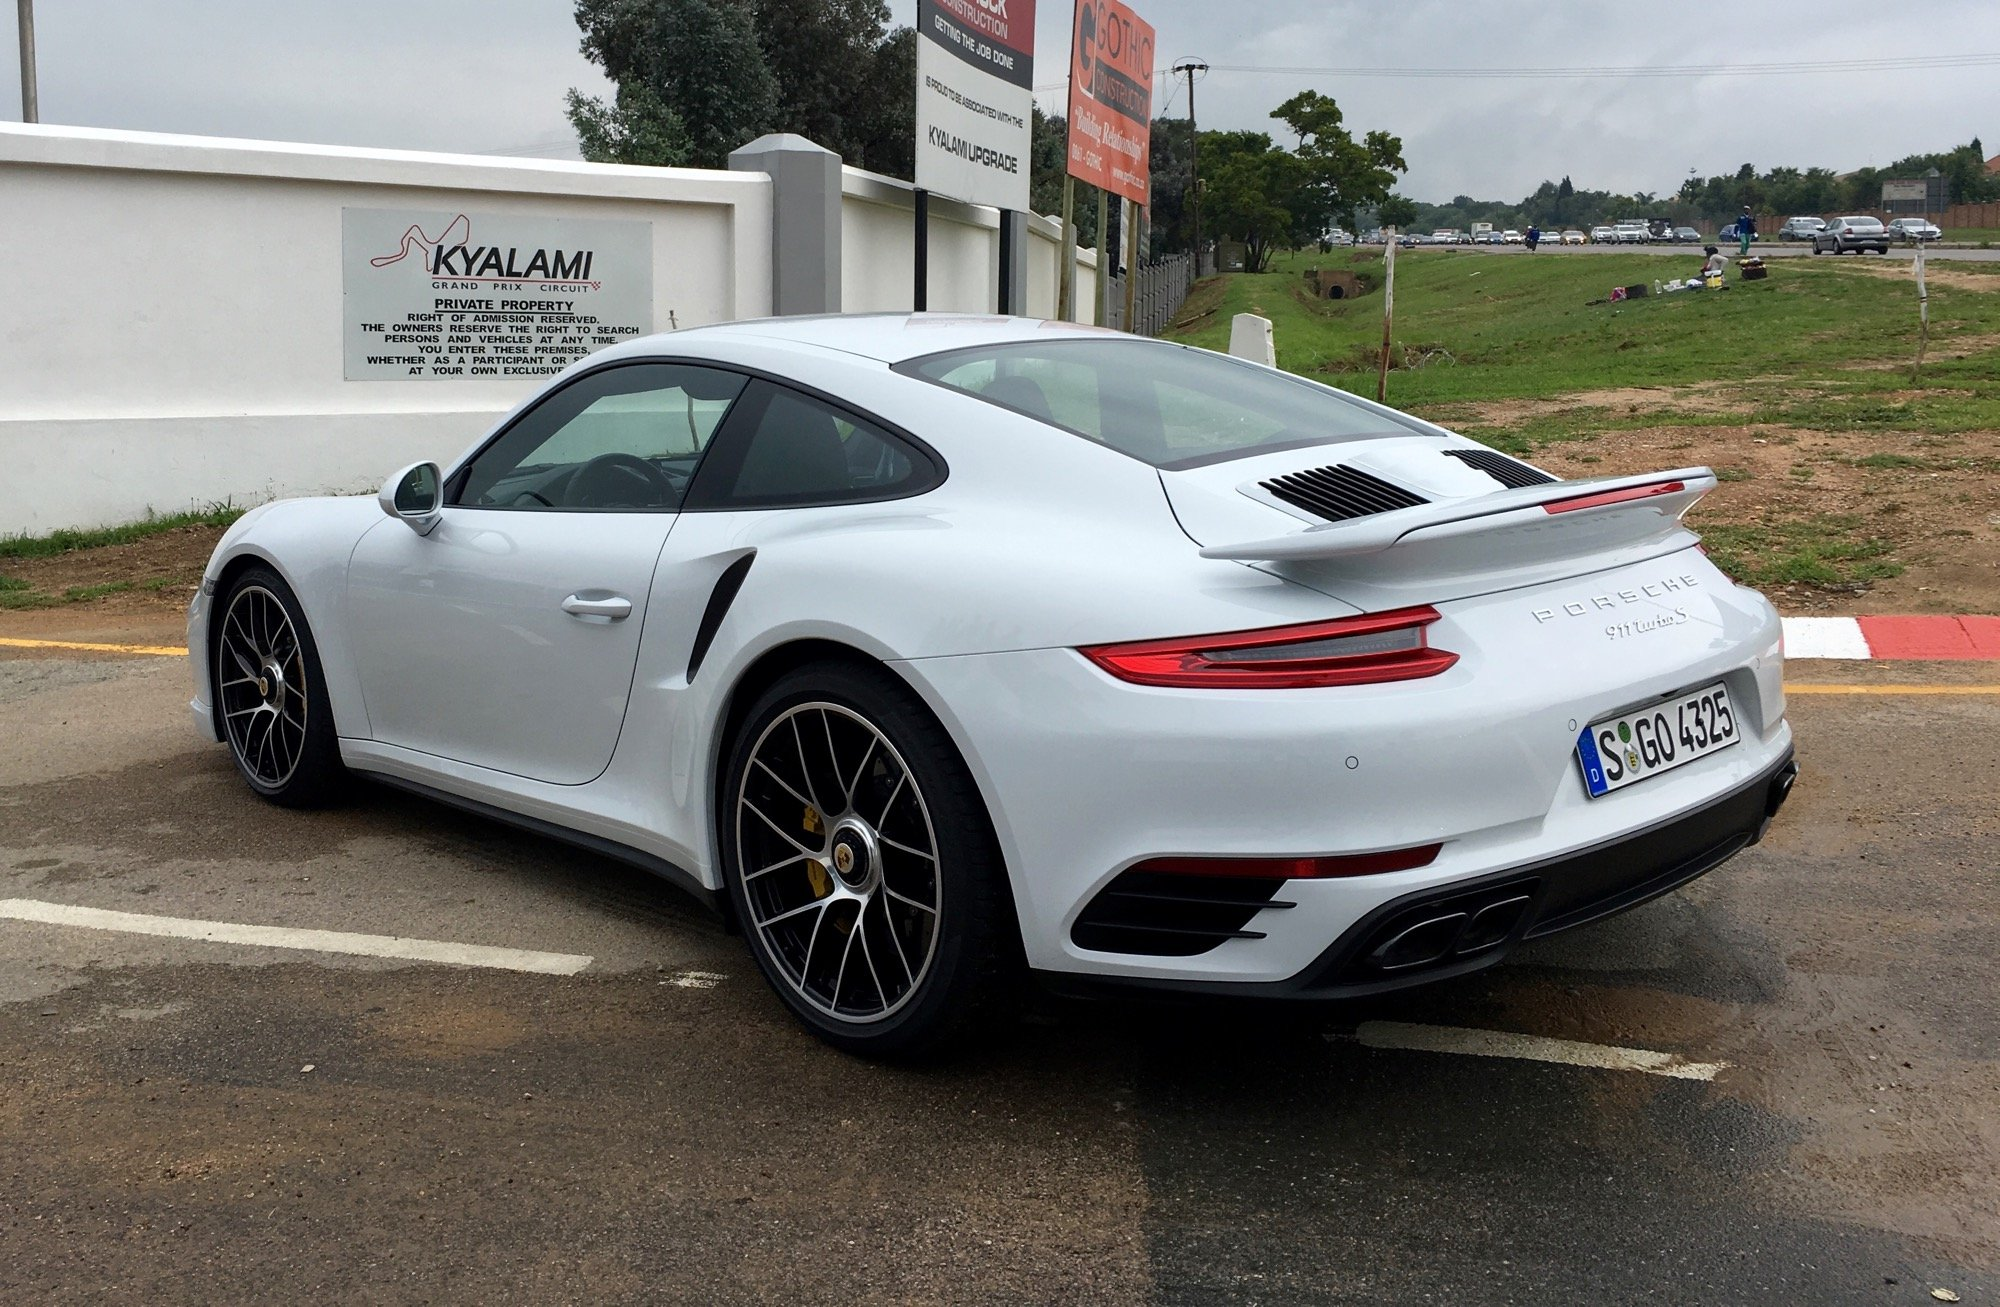 2016 Porsche 911 Turbo and Turbo S Review - photos | CarAdvice